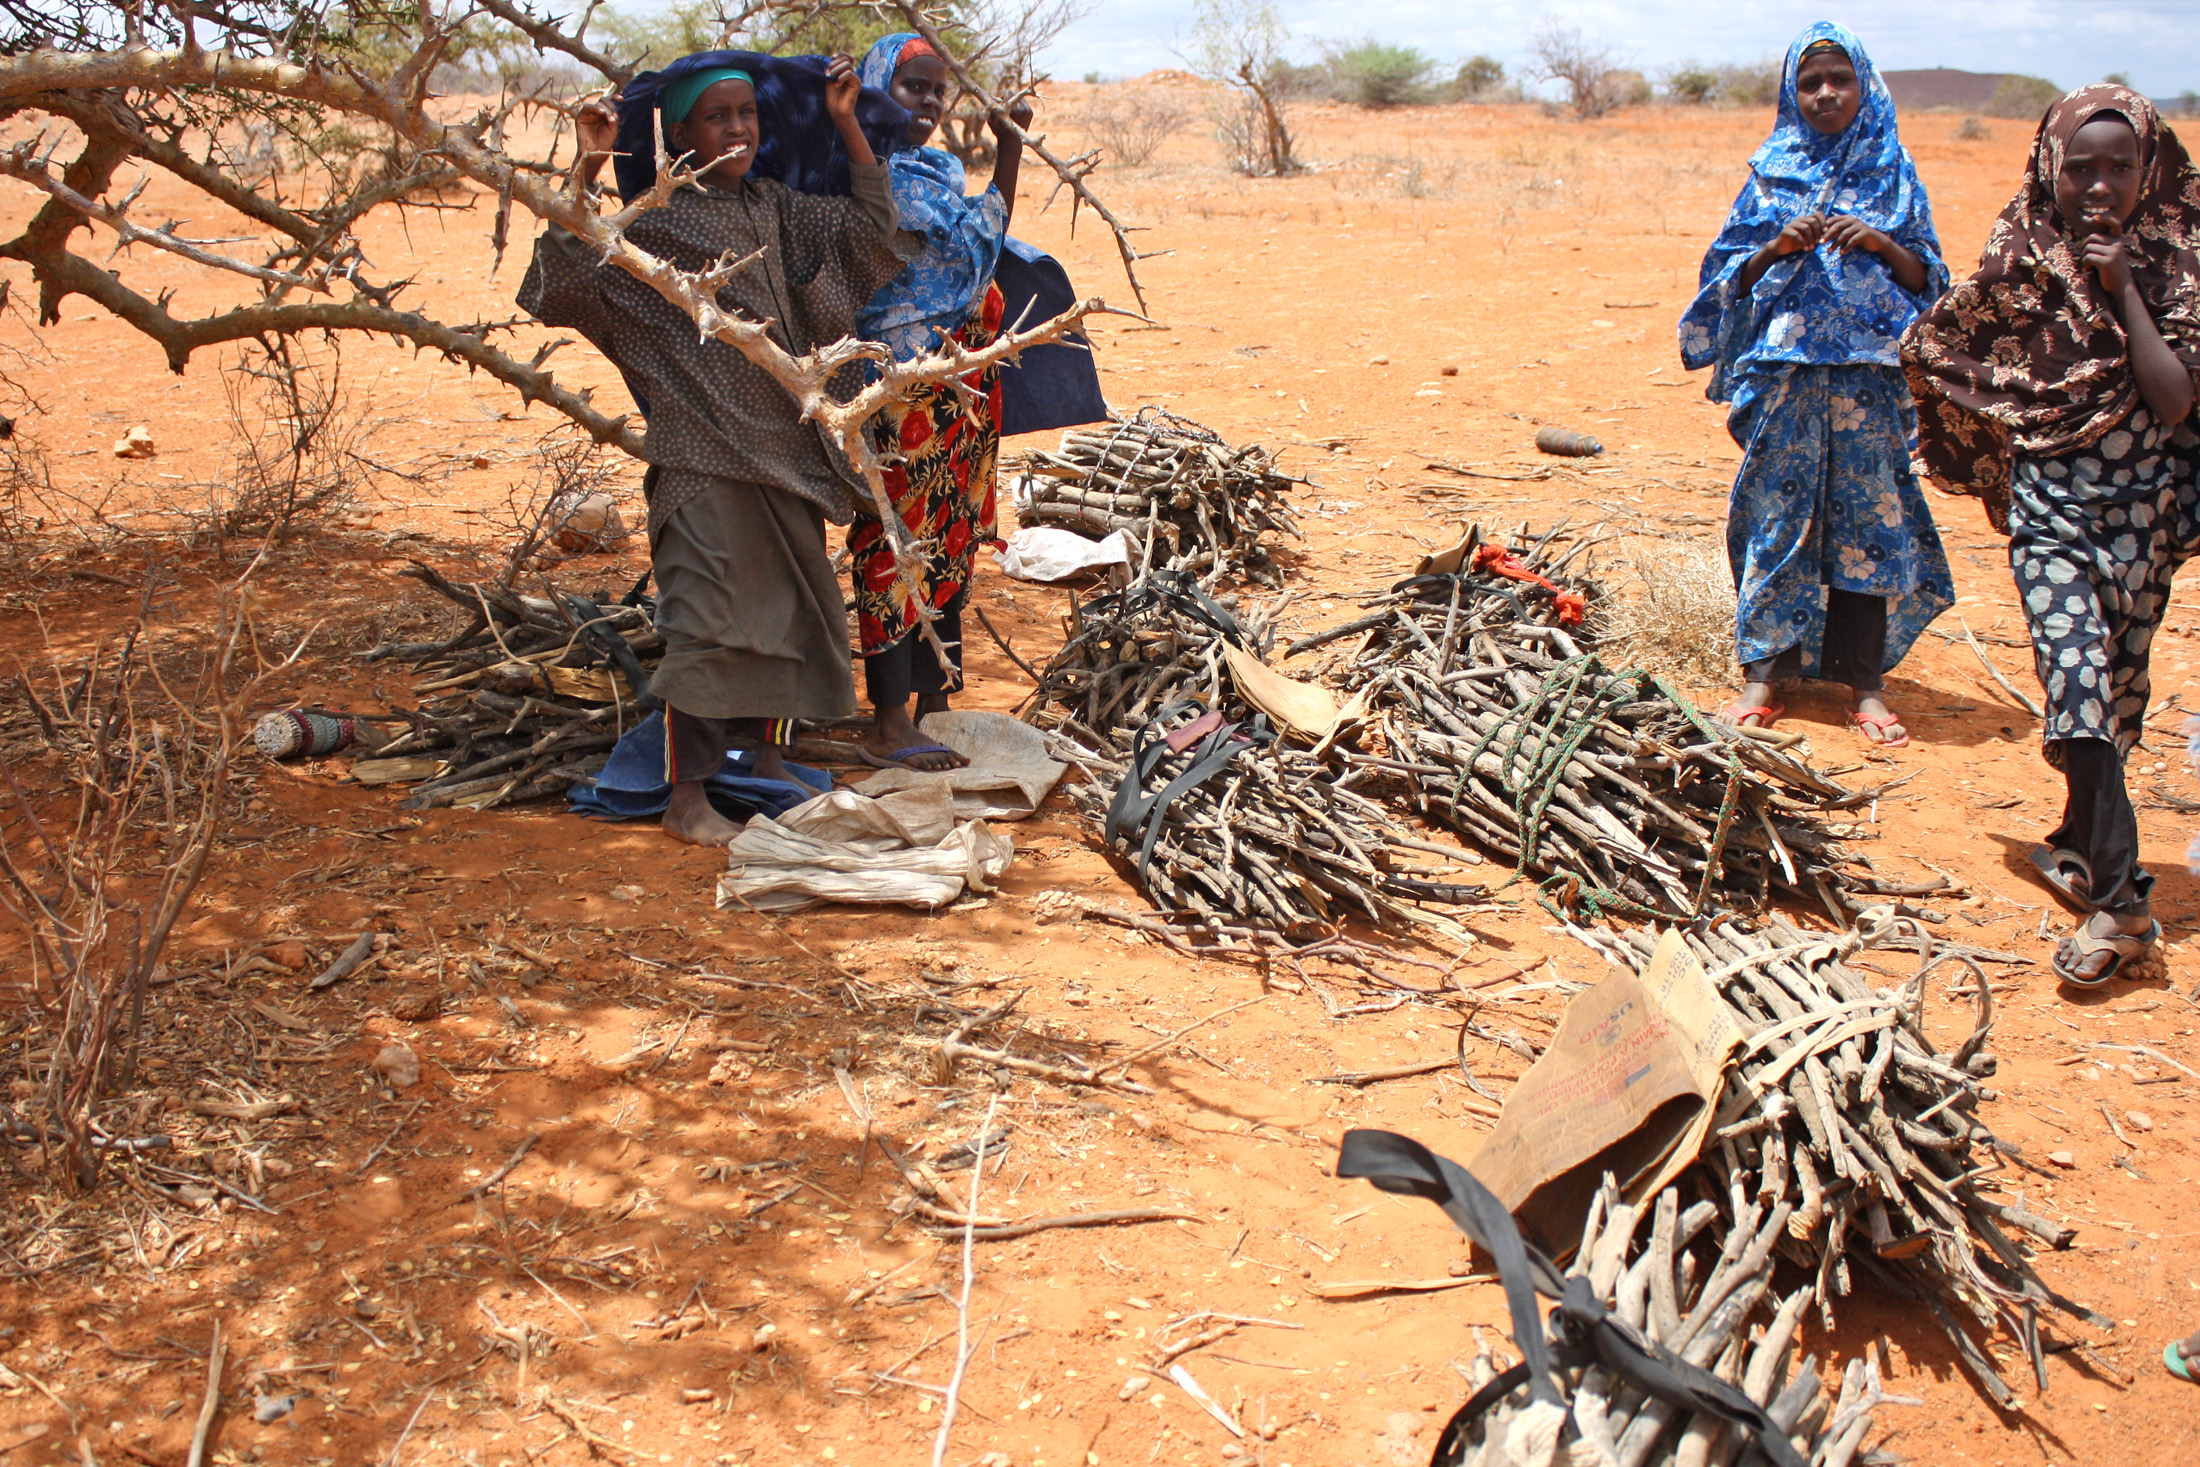 Somali refugees collecting firewood in Melkadida kebele in Ethiopia's Somali region